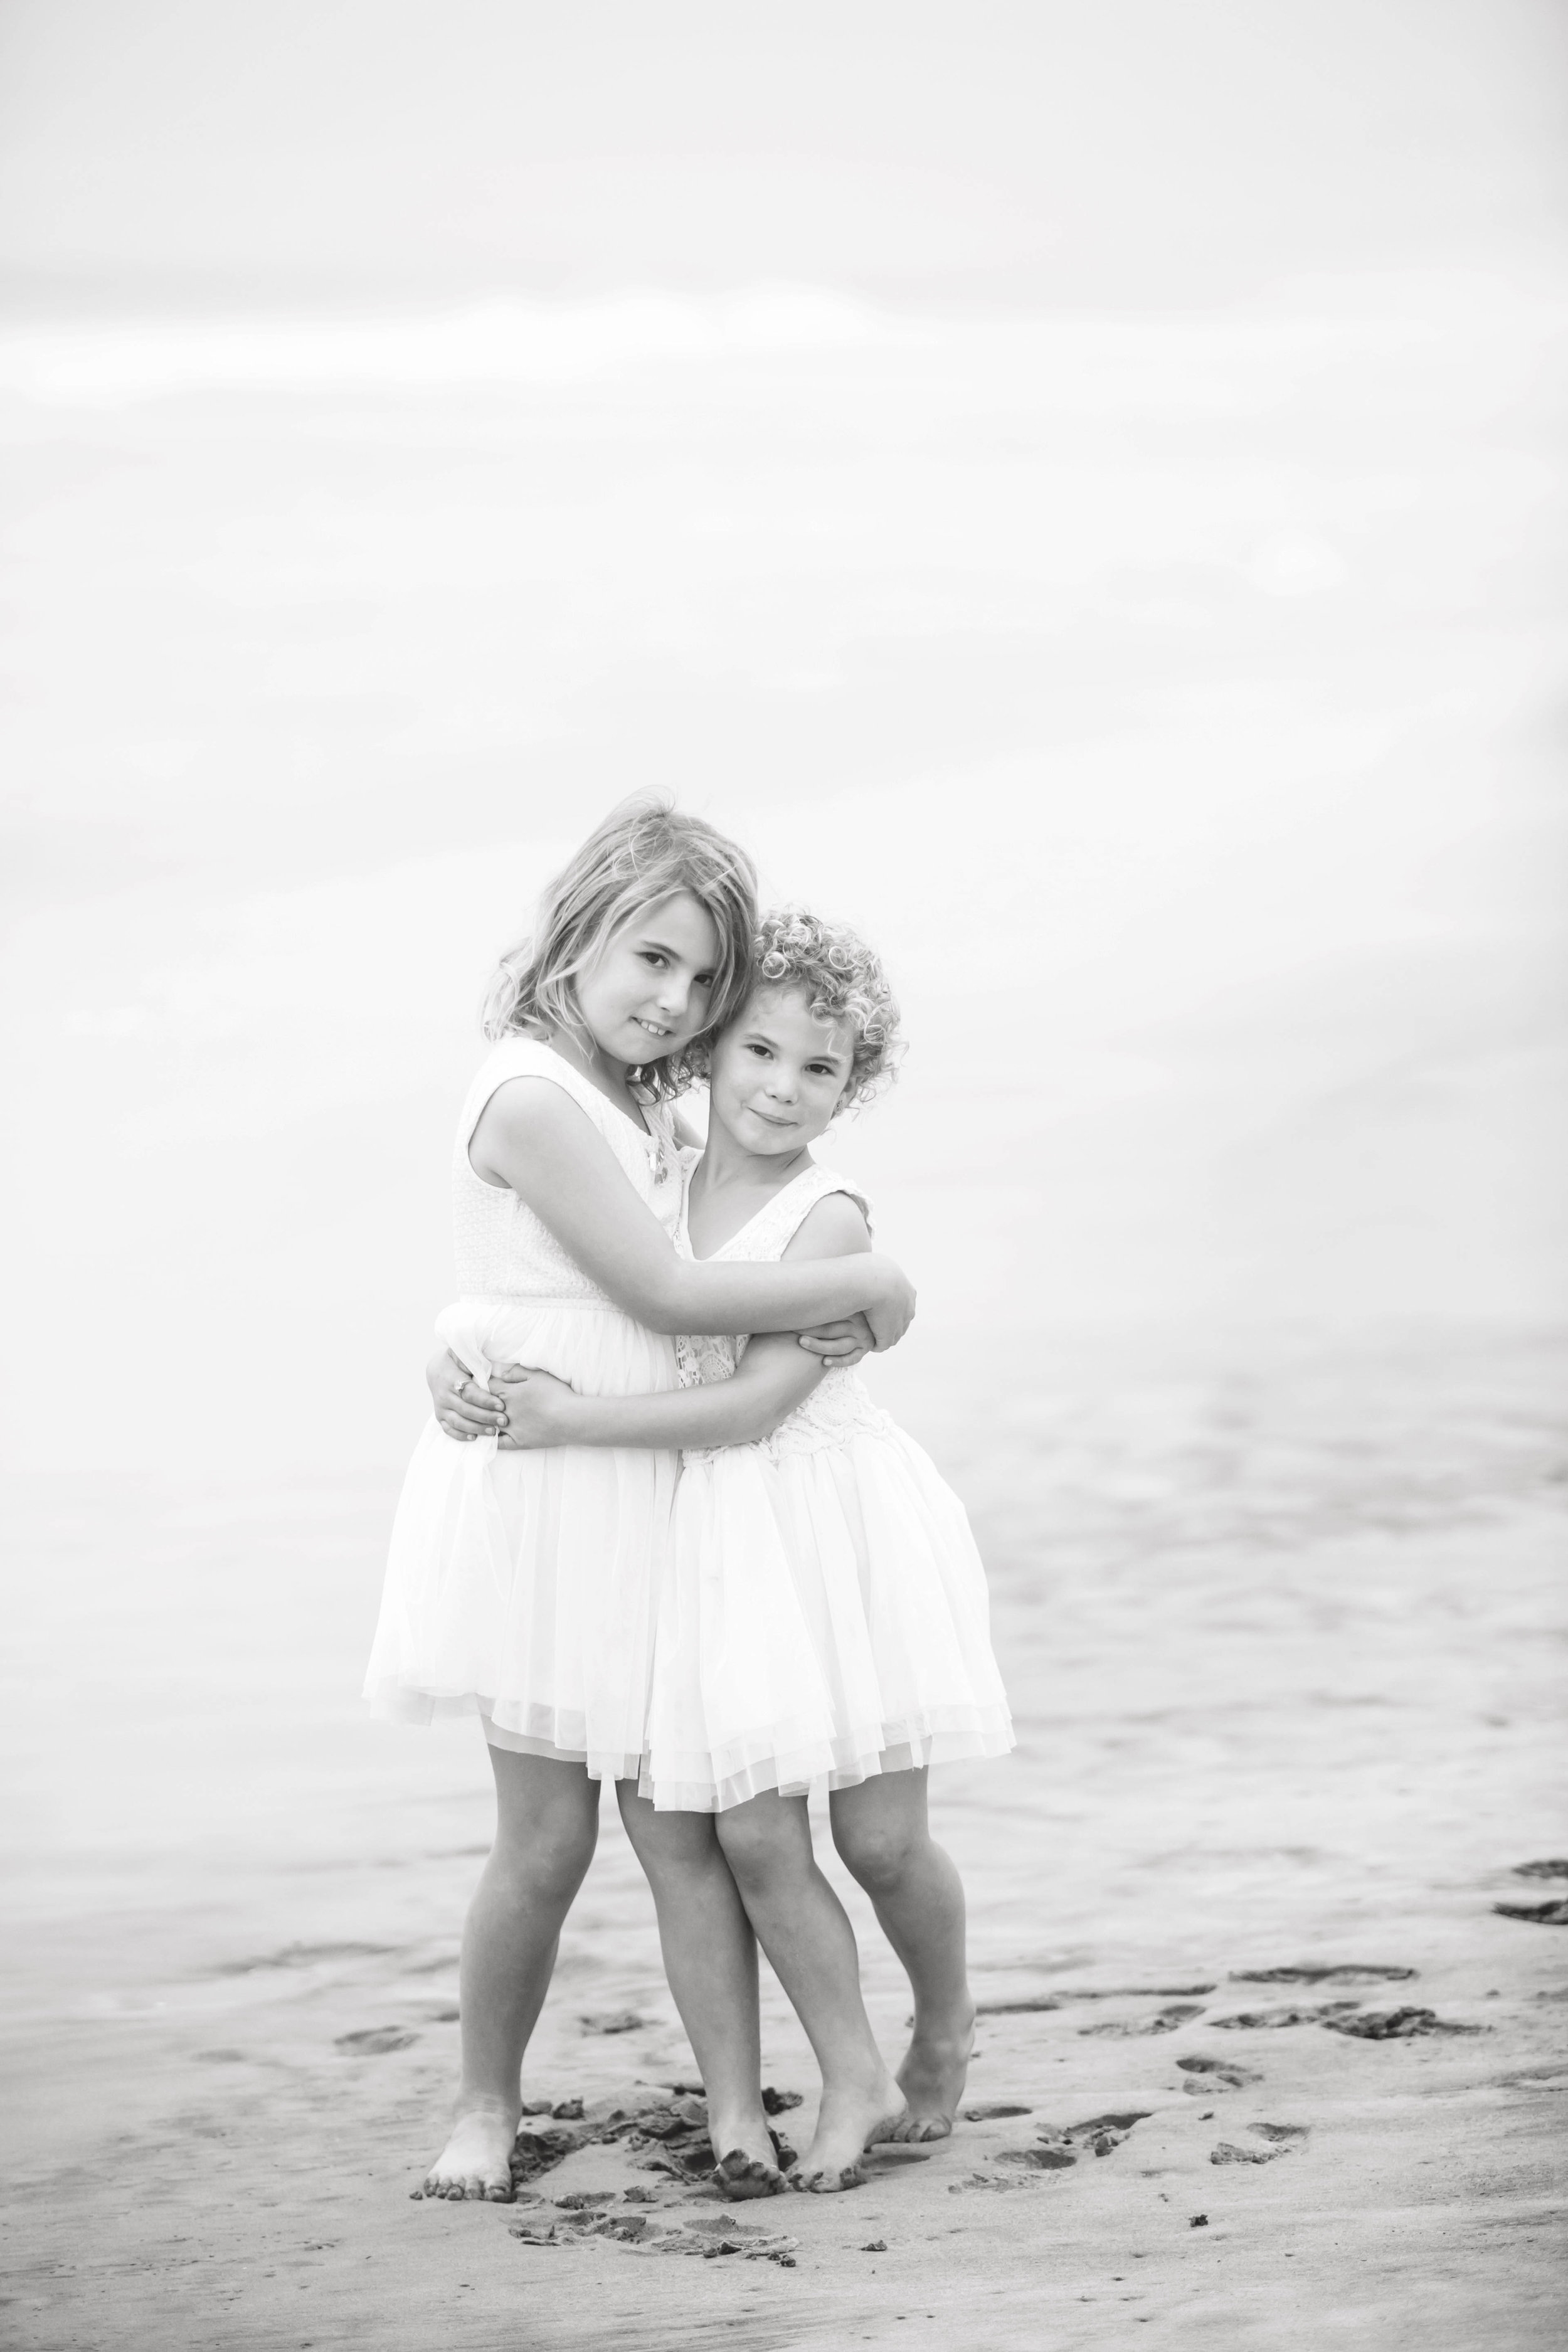 Marble_Falls_Family_Photographer_Jenna_Petty_08.jpg